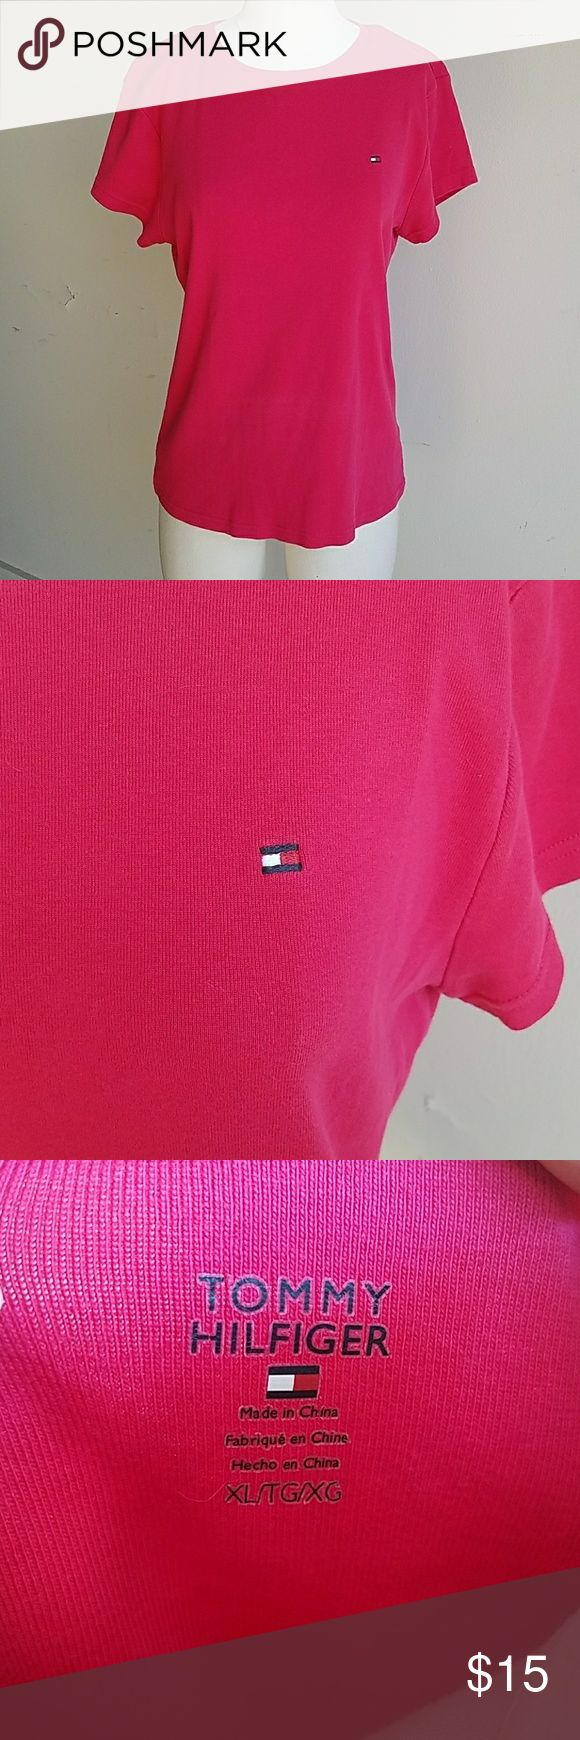 Bright PINK Tommy Hilfiger tshirt Bright color for summer great quality material and brand   14 inches from armpit to bottom of the top   17 inches from armpit to armpit Tommy Hilfiger Tops Tees - Short Sleeve